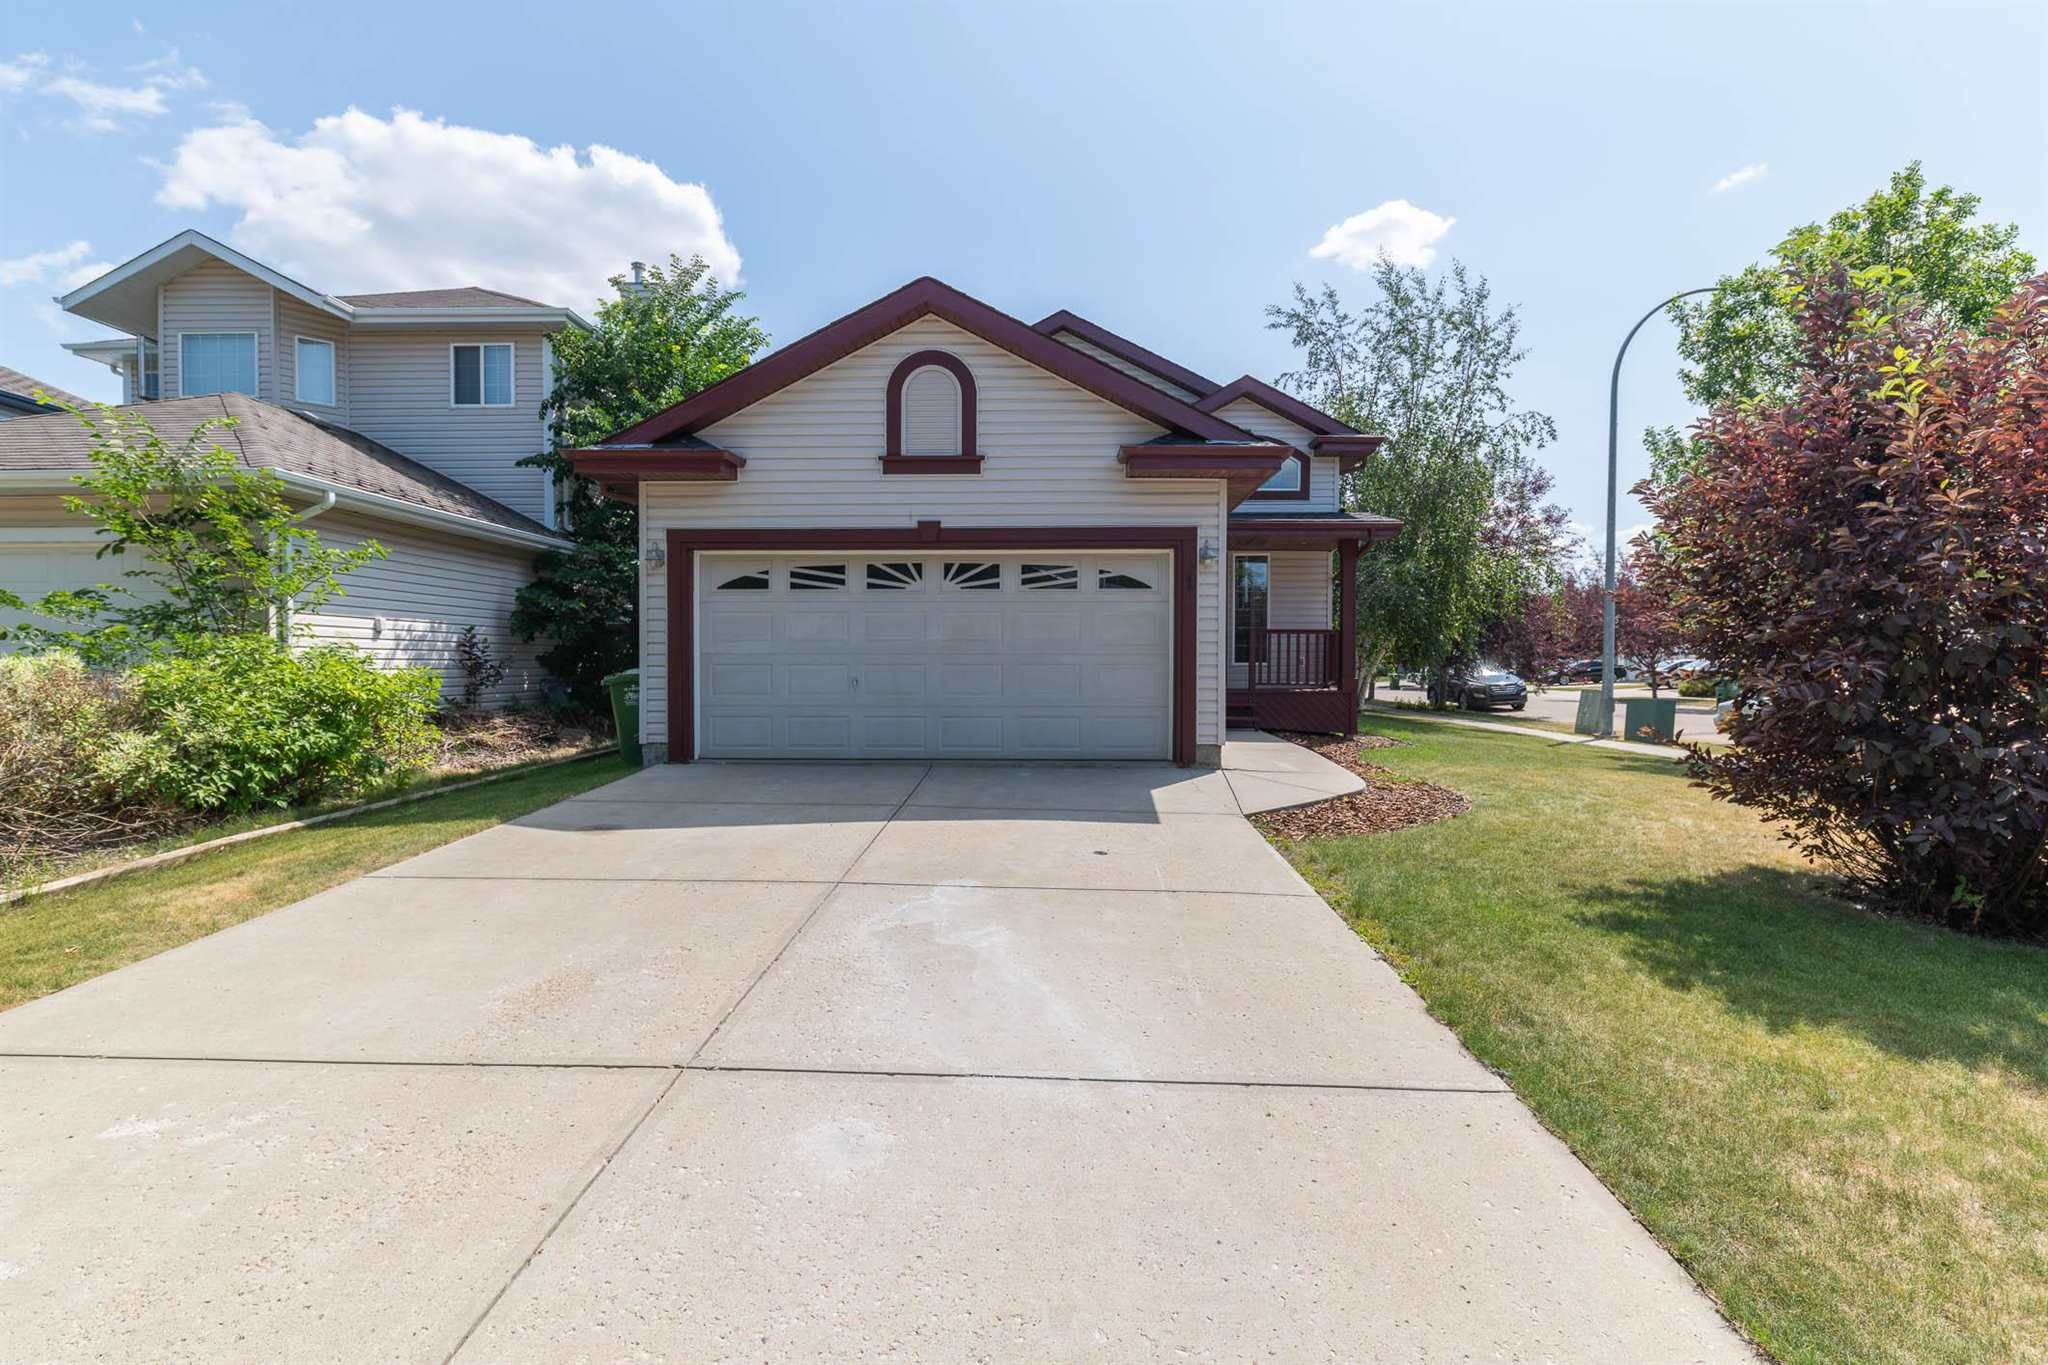 Main Photo: 1 ERINWOODS Place: St. Albert House for sale : MLS®# E4254213